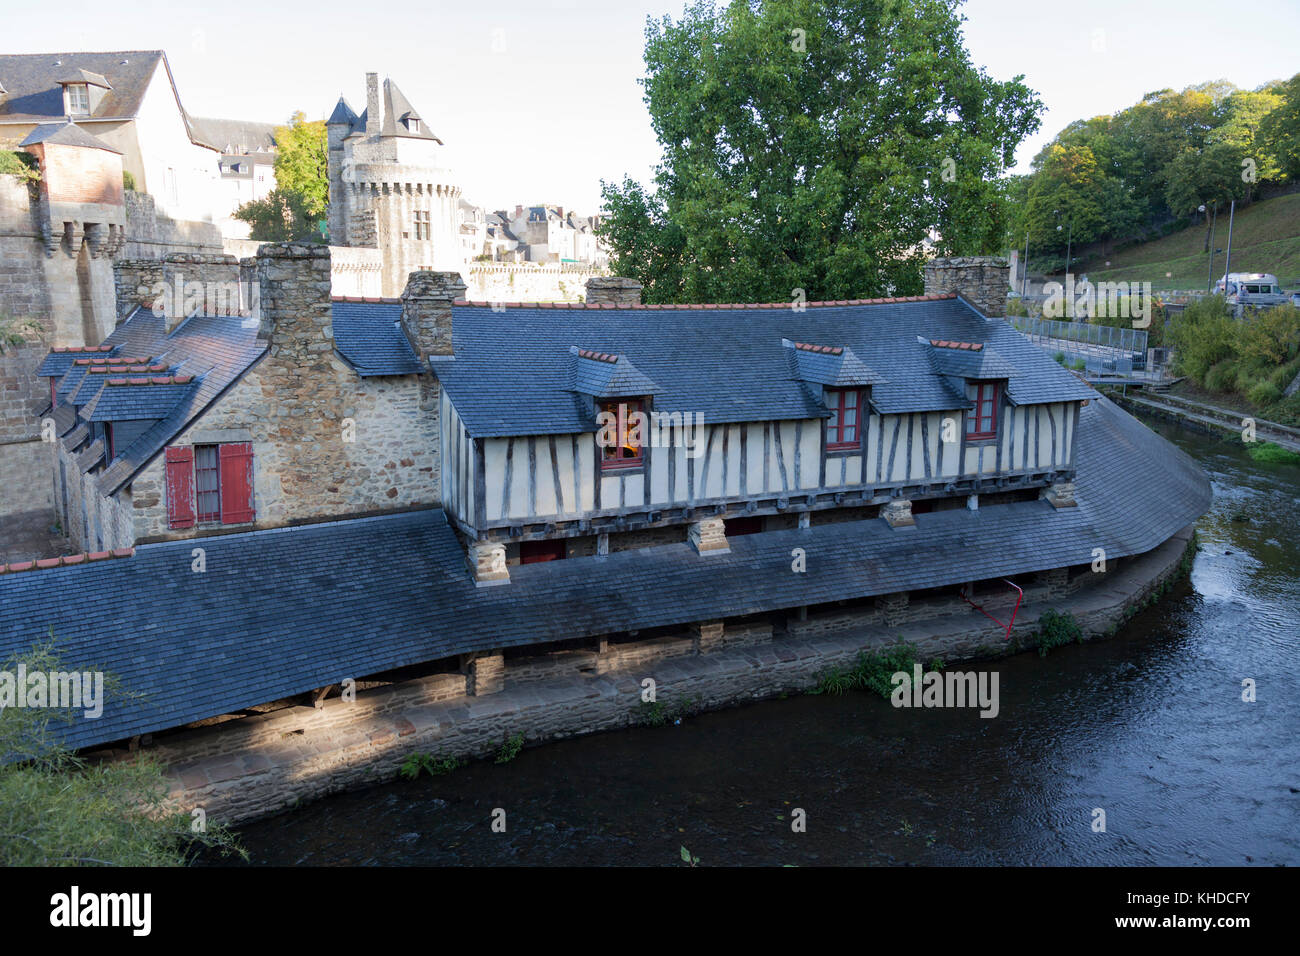 The wash  houses of Vannes (Morbihan - France). Located below ramparts, they mirror in the Marle river.  Les lavoirs - Stock Image